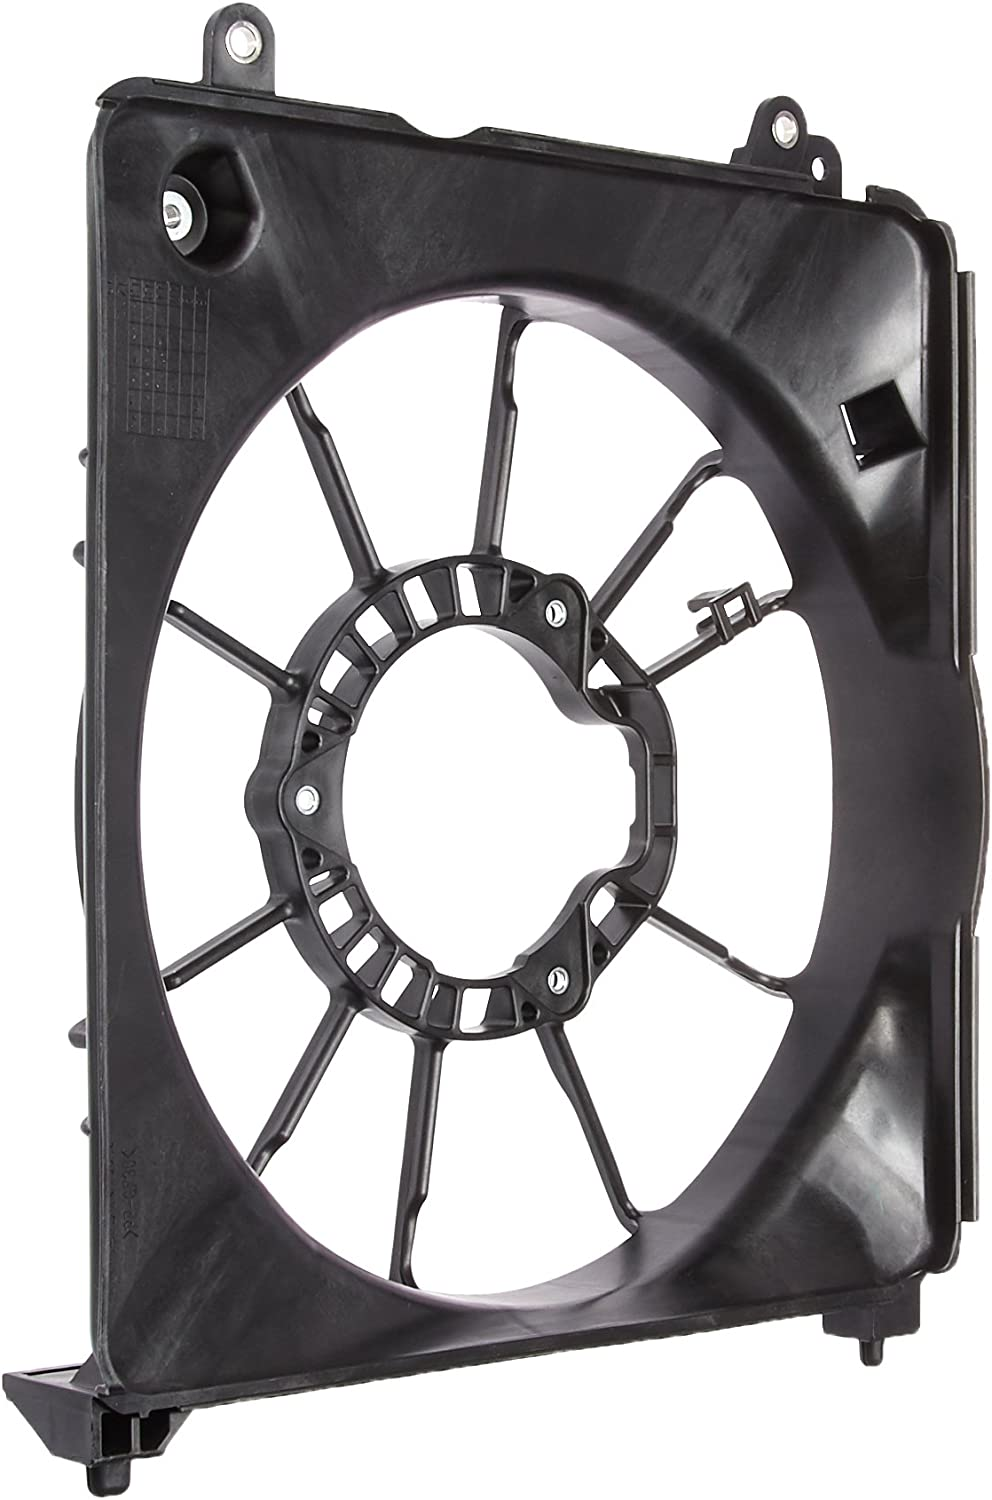 Fan Shroud Genuine Honda 19015-RMX-A51